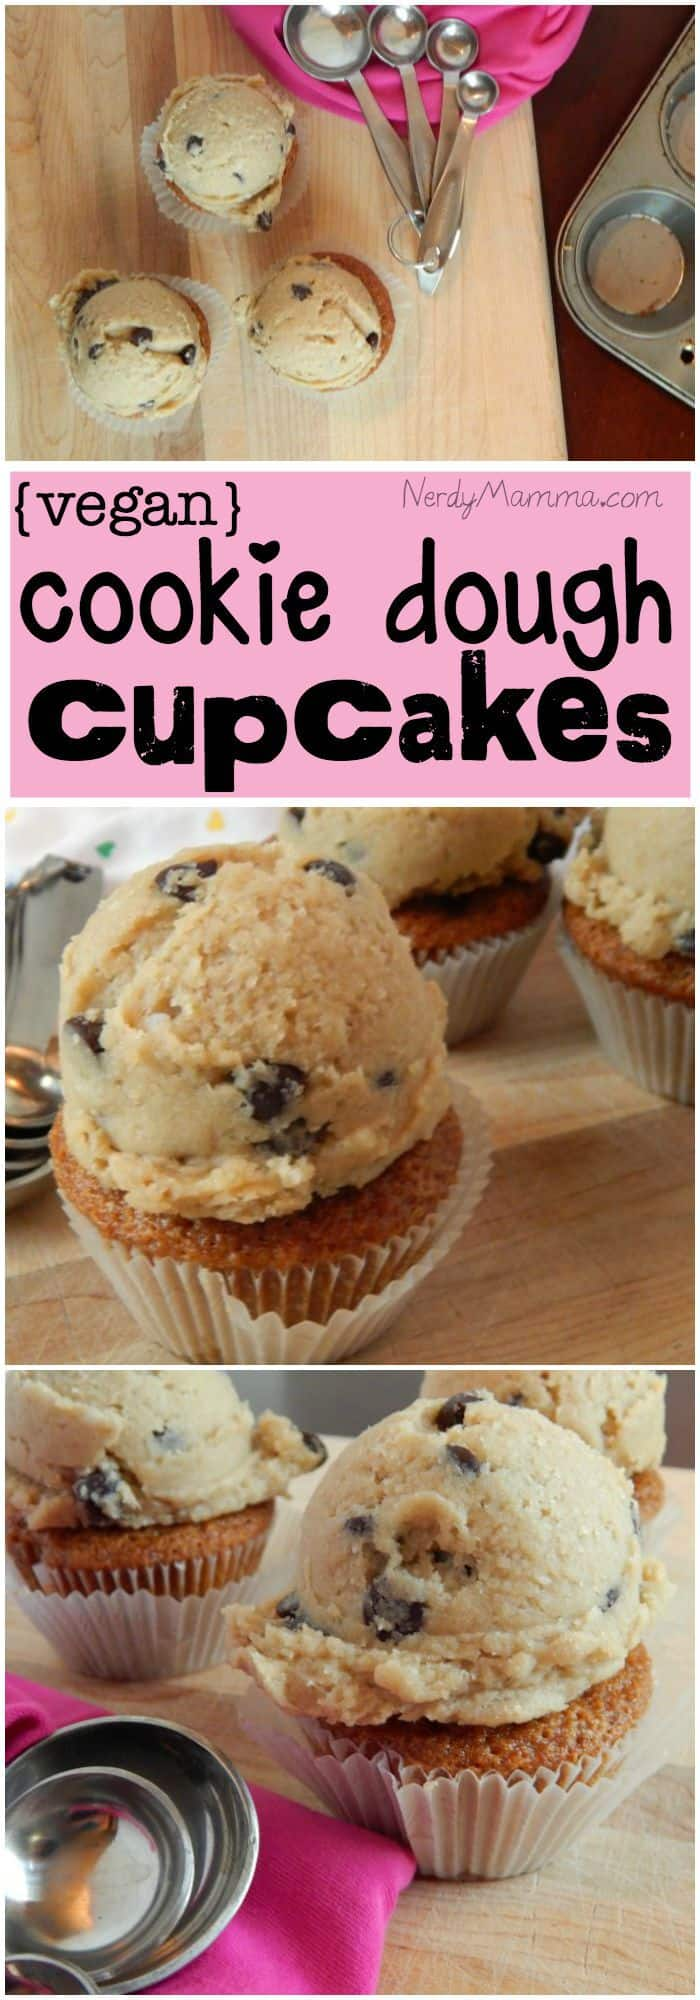 These dairy-free egg-free cookie dough cupcakes are so delicious and my kids think their really getting an awesome treat when I make these!